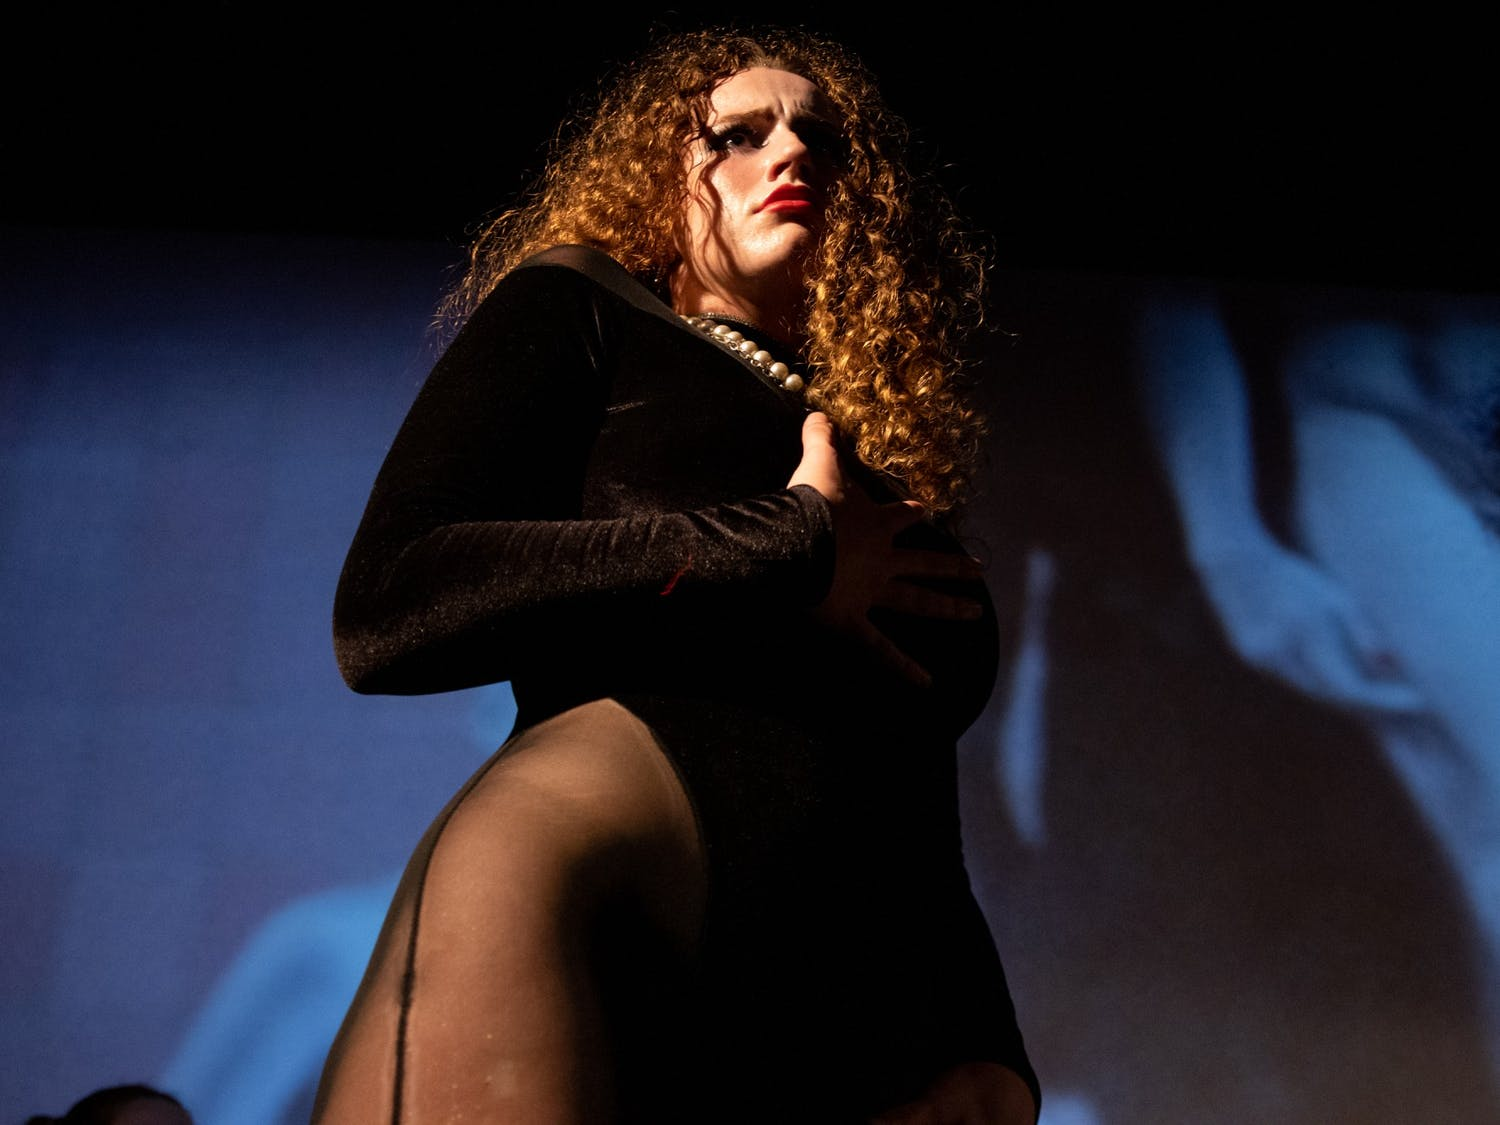 UNC senior Olivia Sullivan portrays Dr. Frank-N-Furter during an Oct. 26 technical rehearsal of the Rocky Horror Picture Show at the Varsity Theatre. The production is an annual tradition of the UNC Pauper Players.